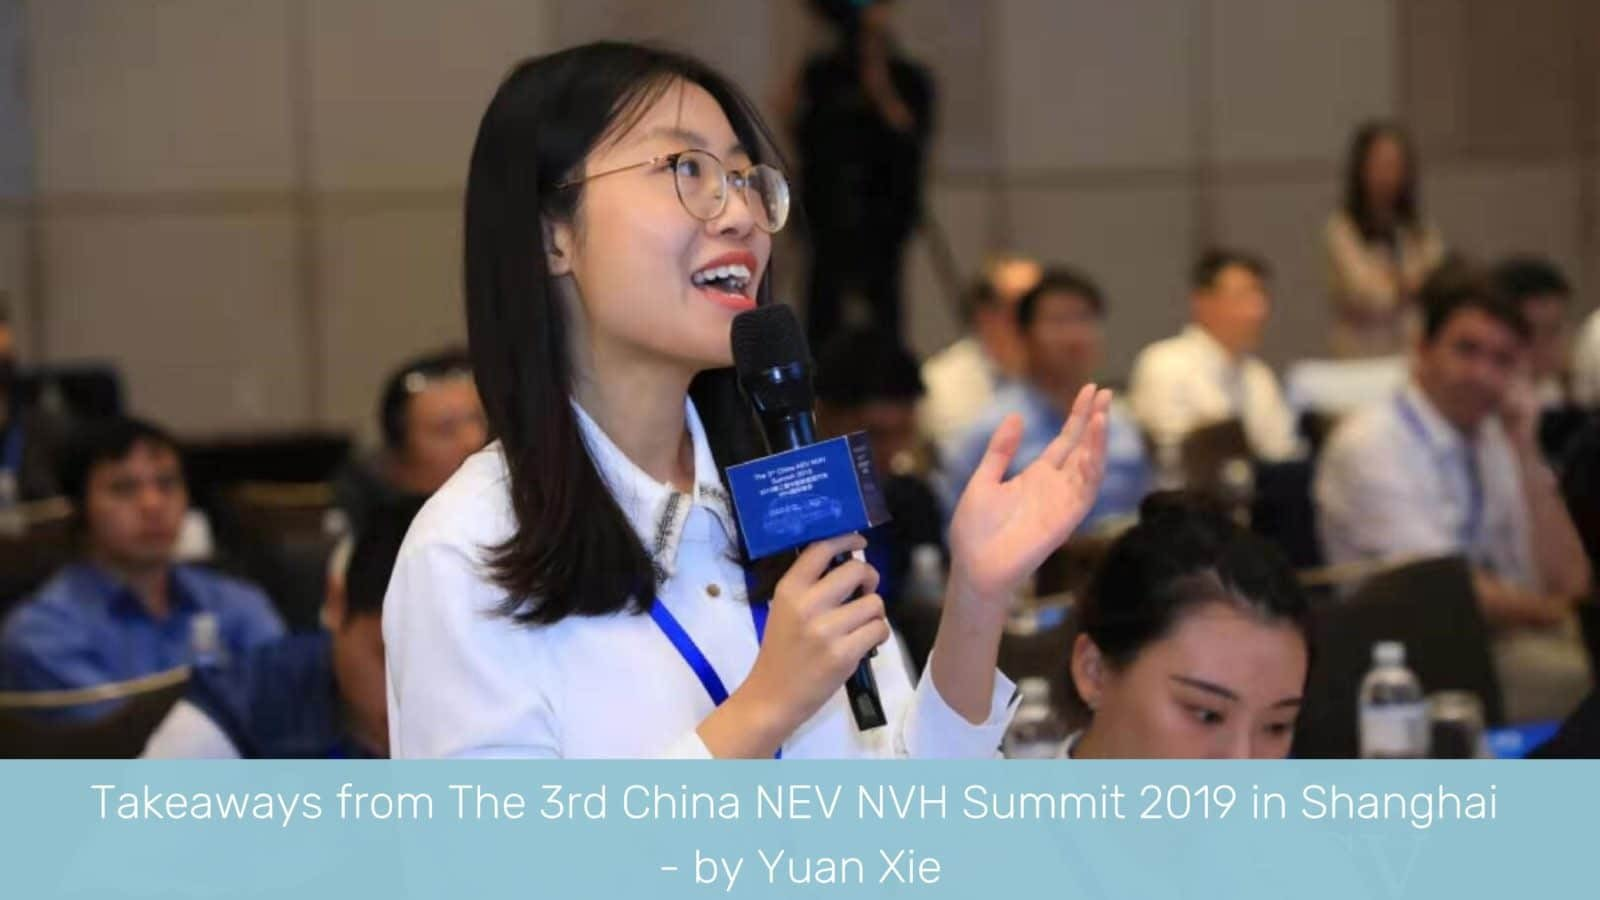 Takeways from the 3rd NEV NVH Summit 2019 in Shanghai